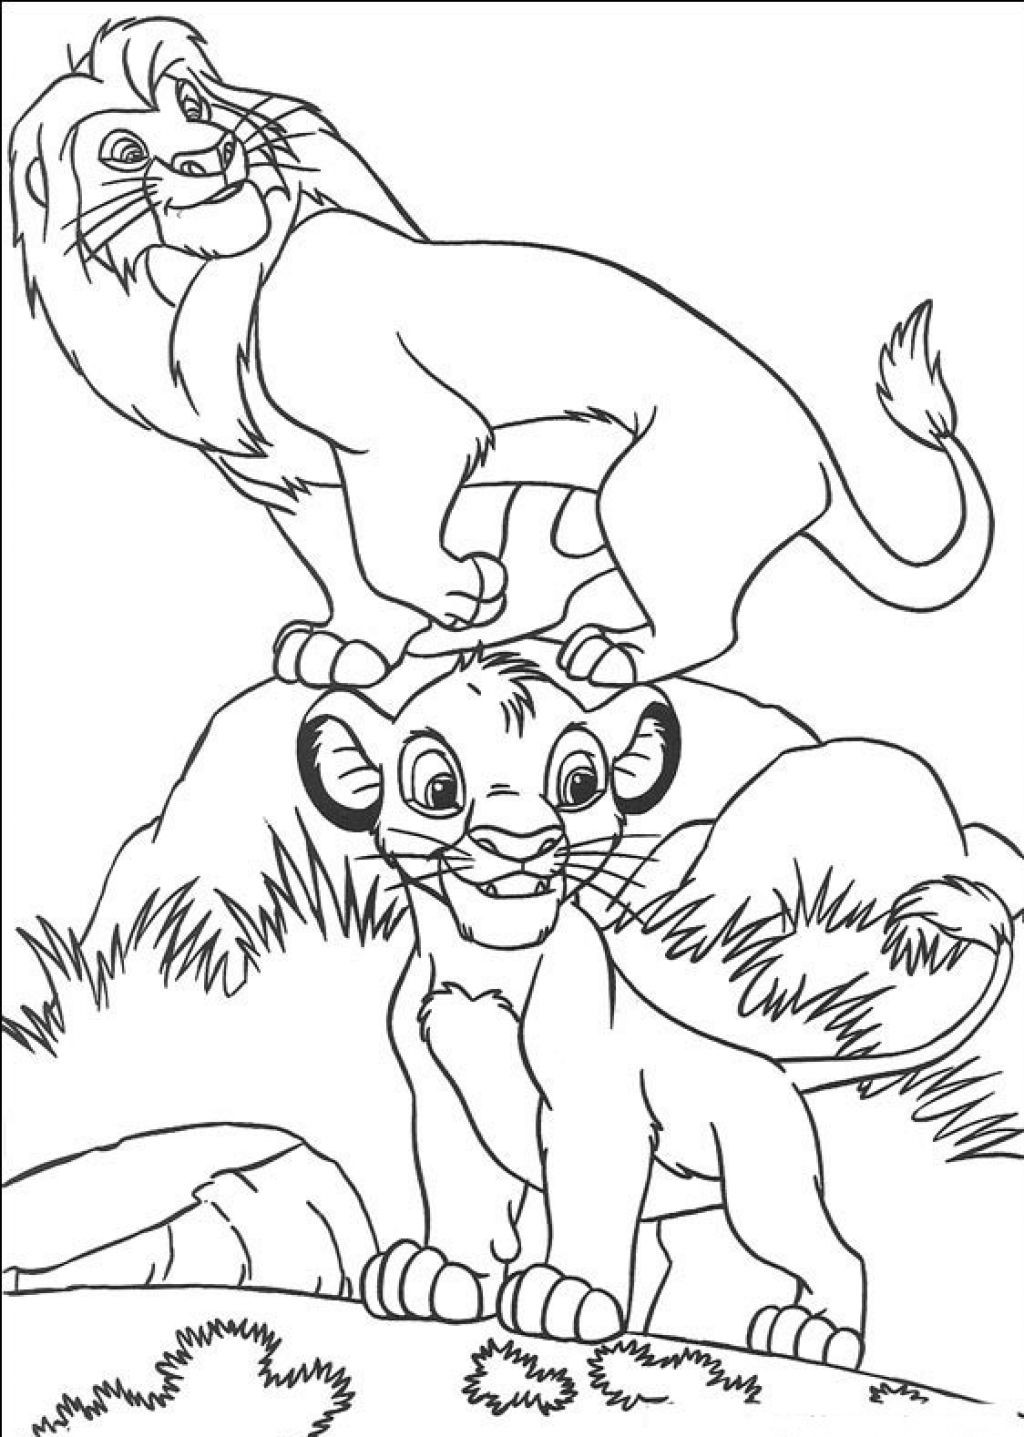 Coloring Books For Toddlers Online  Free Printable Simba Coloring Pages For Kids